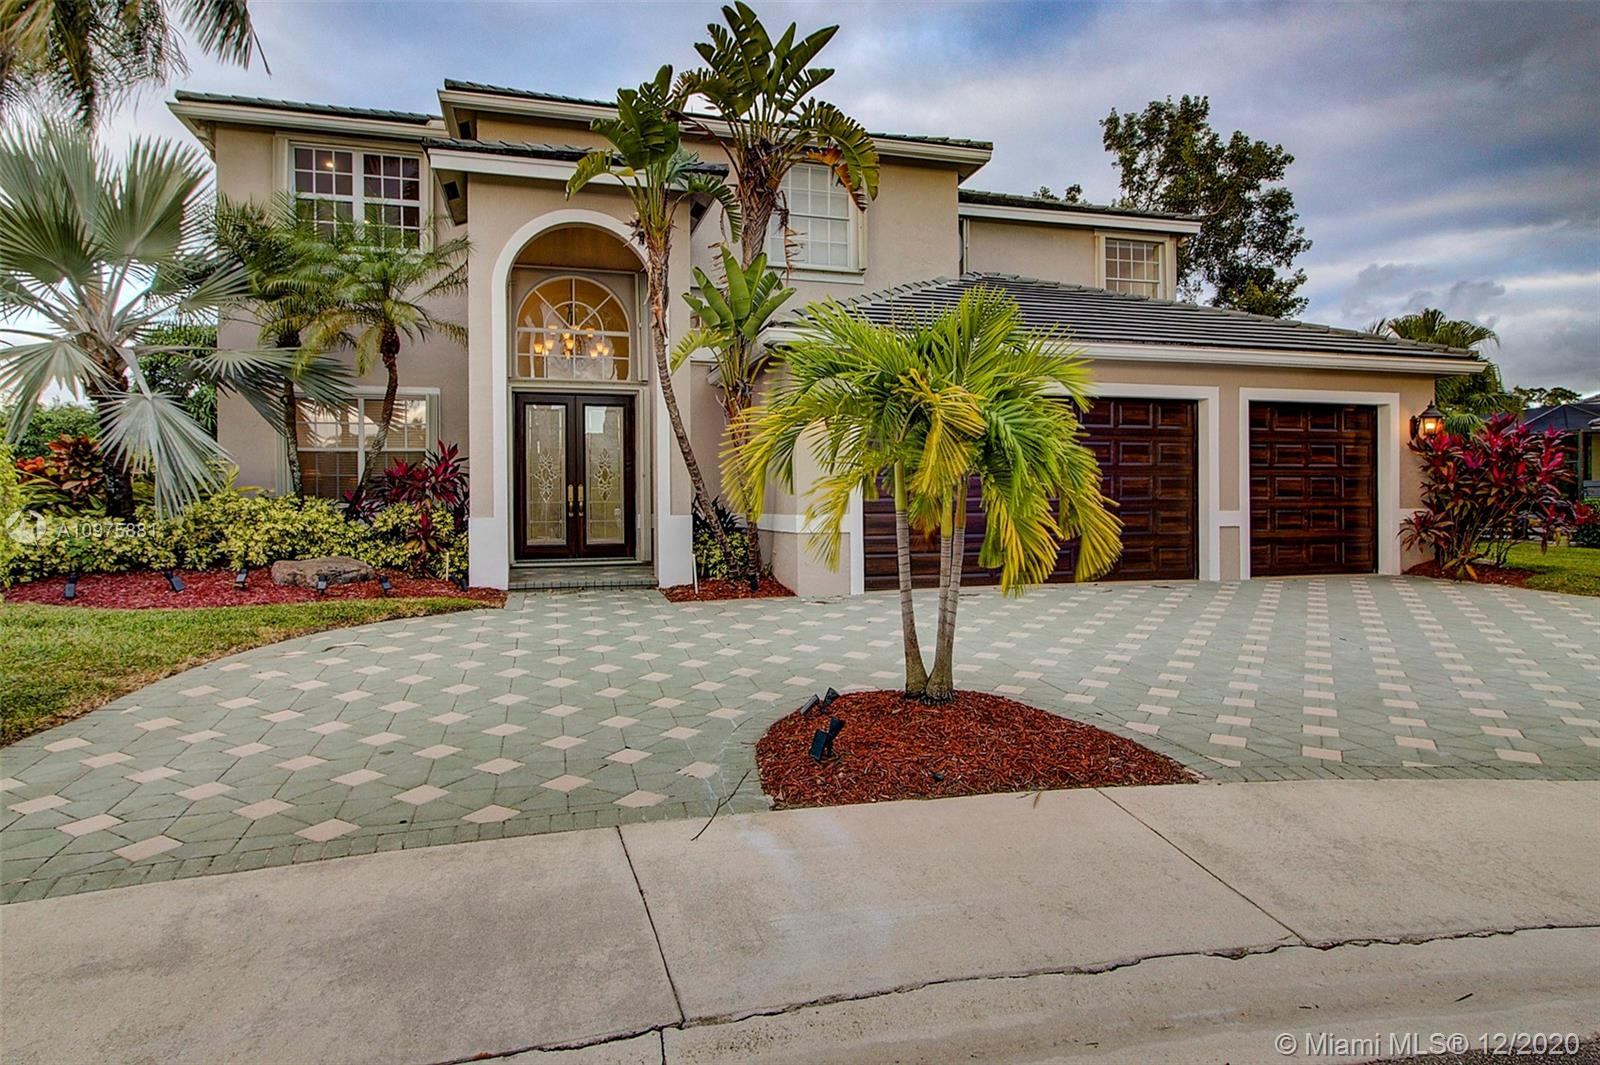 Absolutely gorgeous home located in one of Weston's most desirable neighborhoods, The Landings. This stunning home is completely remodeled and includes an exquisite sunroom, beautiful screened in pool and summer kitchen overlooking the lake. 5 bedrooms, 4 bathrooms and 3 car garage. True South Florida Living at its best.